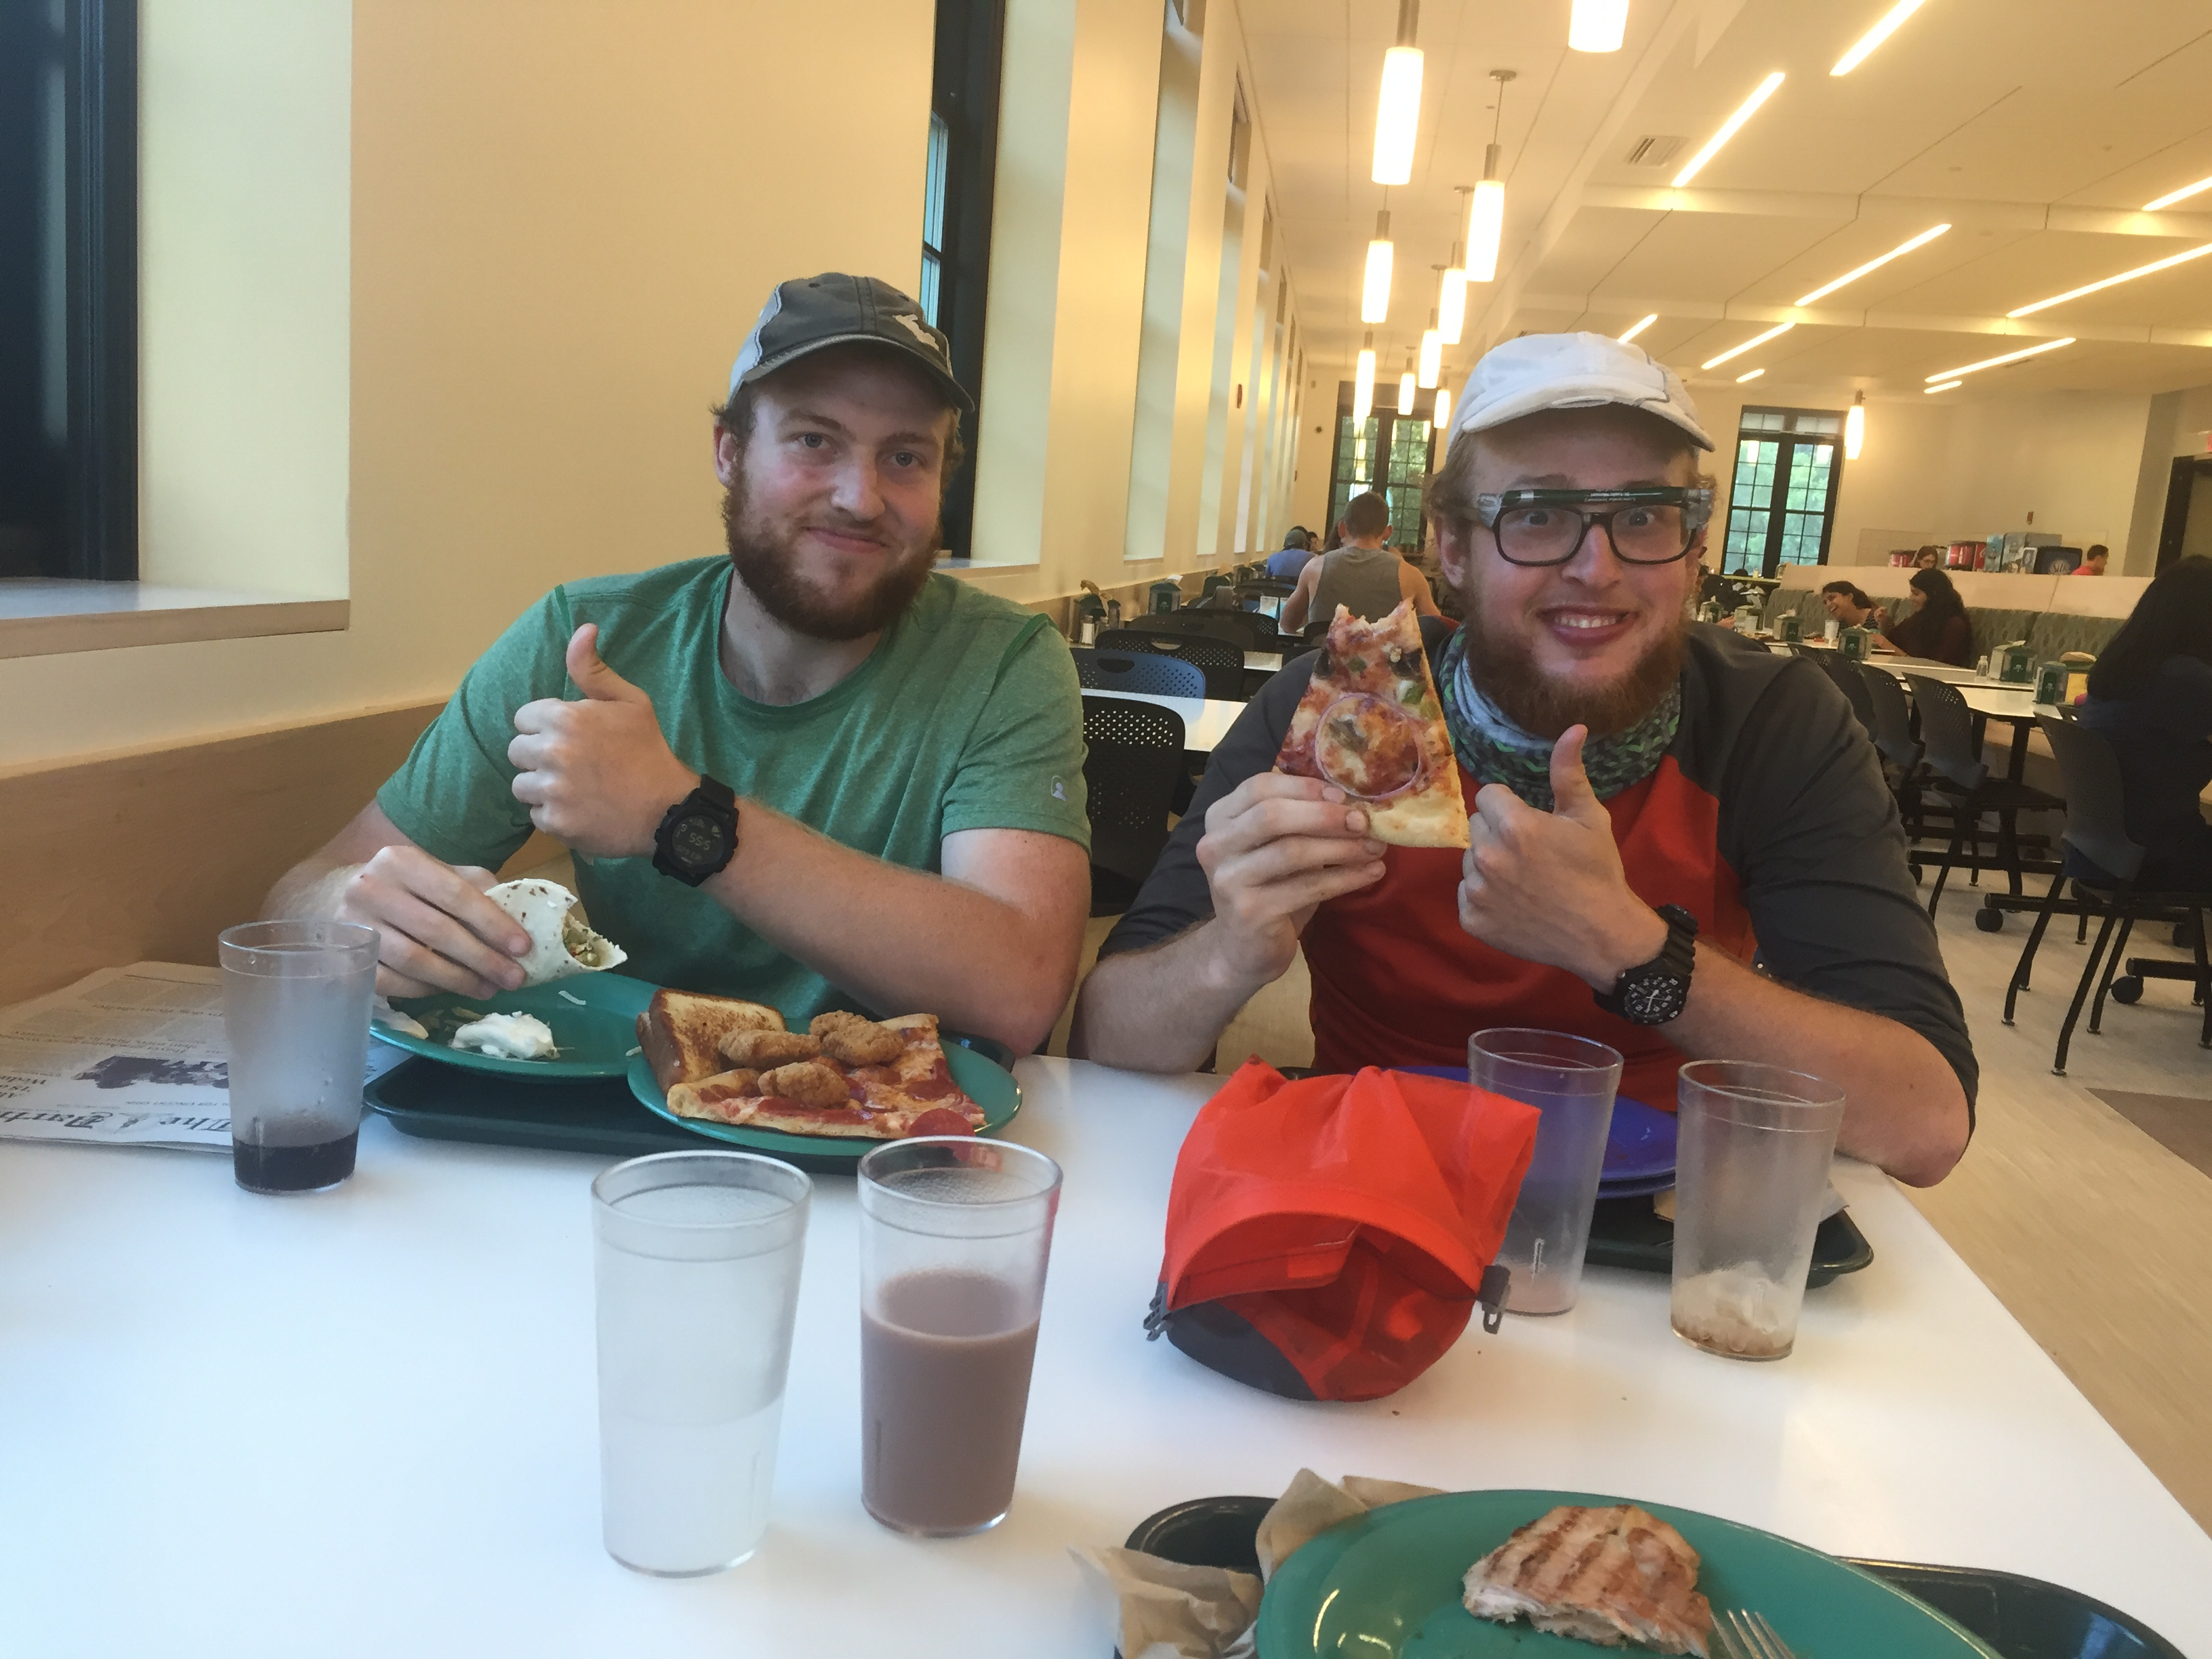 We feasted at Dartmouth College's all you can eat cafeteria